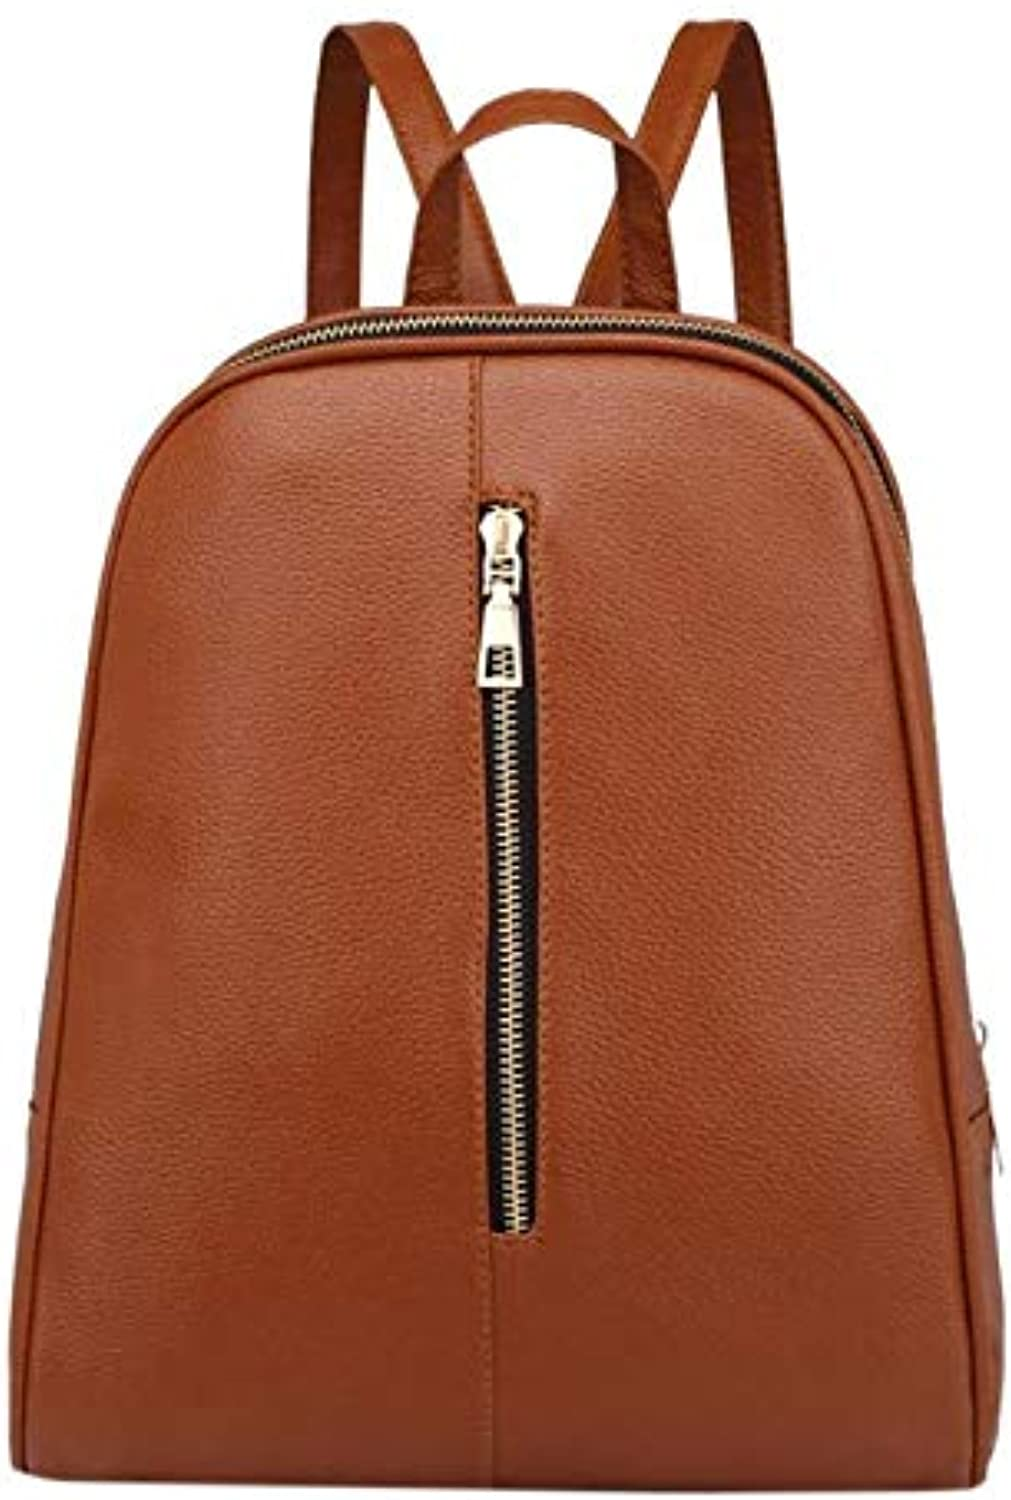 ASHIJIN Womens Casual Zipper Backpacks for Students Shoulder Bags Pure color Simple Style Girls Pack